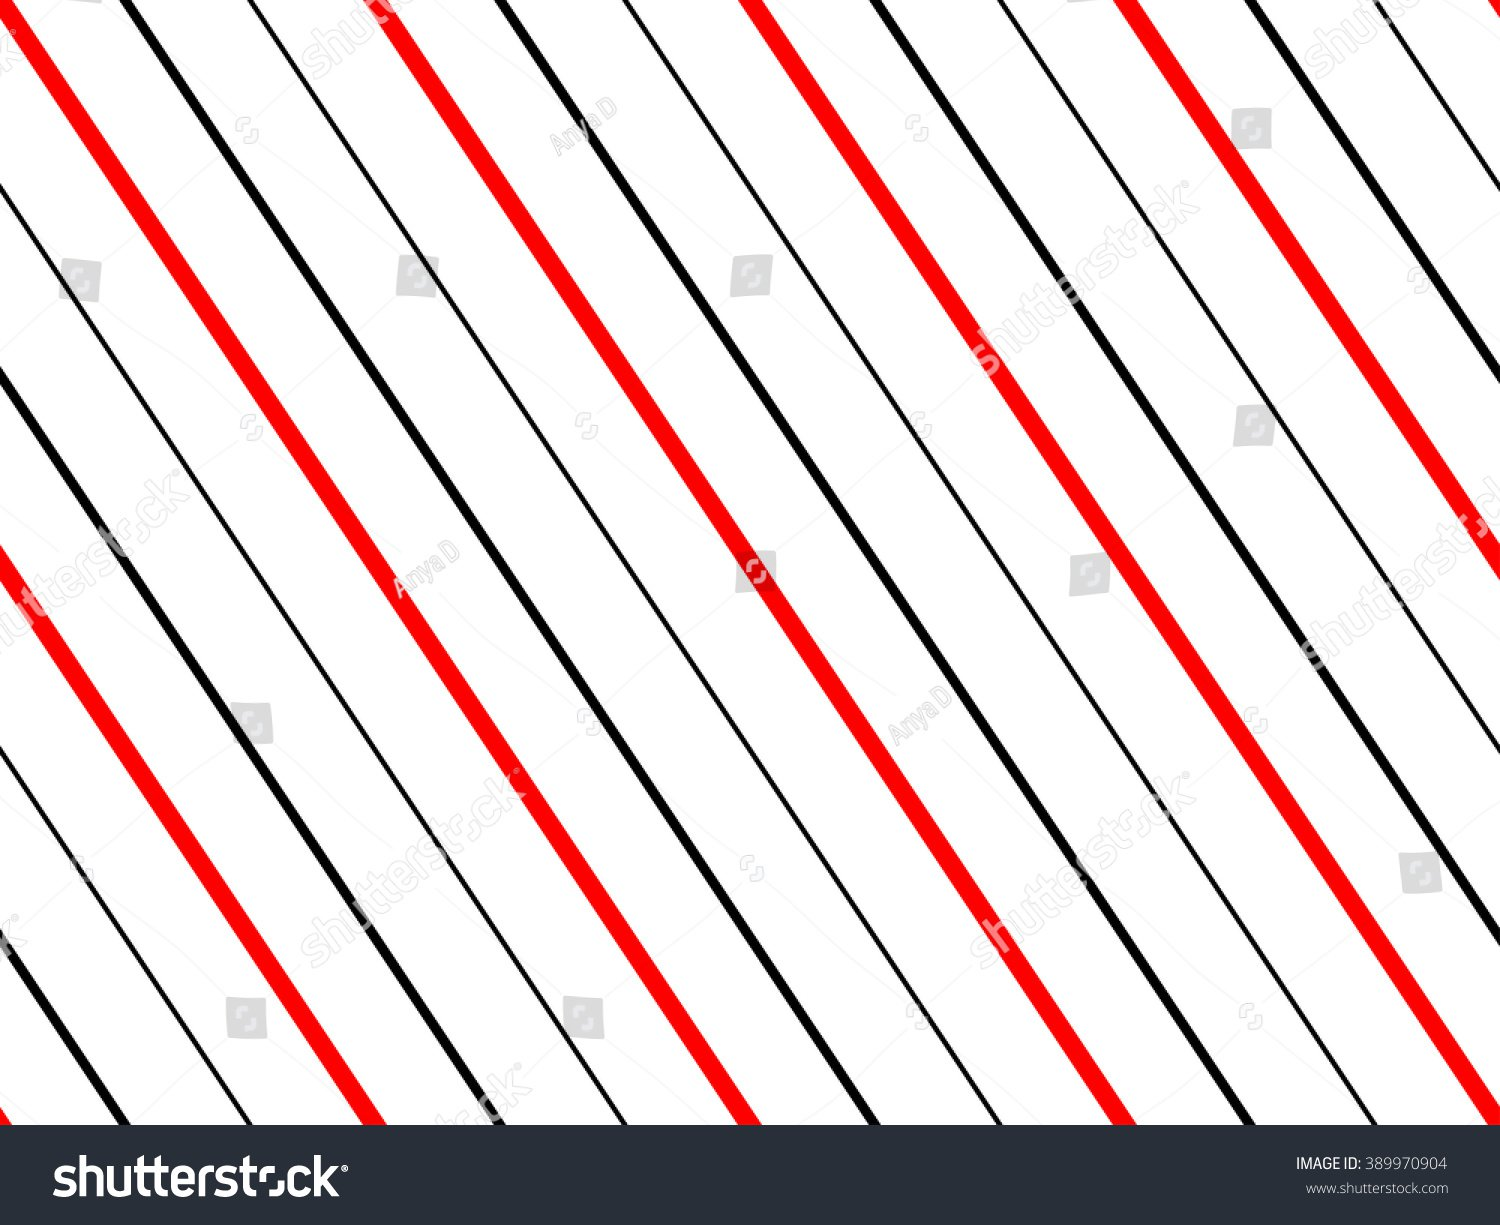 red and black lines - Google Search